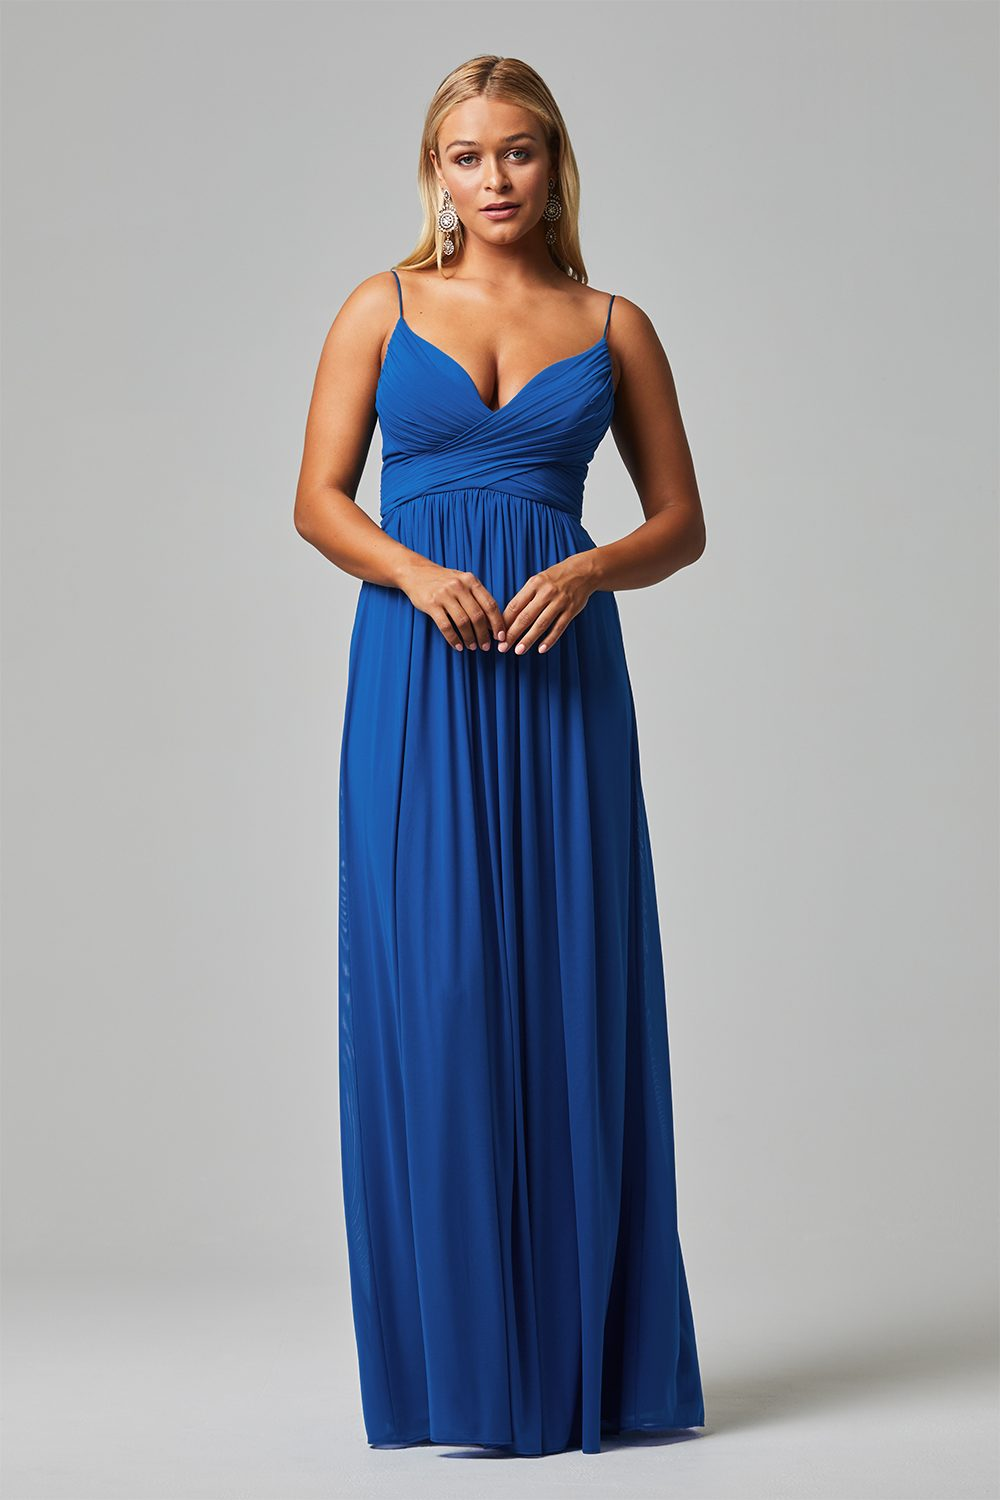 Violeta Bridesmaid Dress - TO819